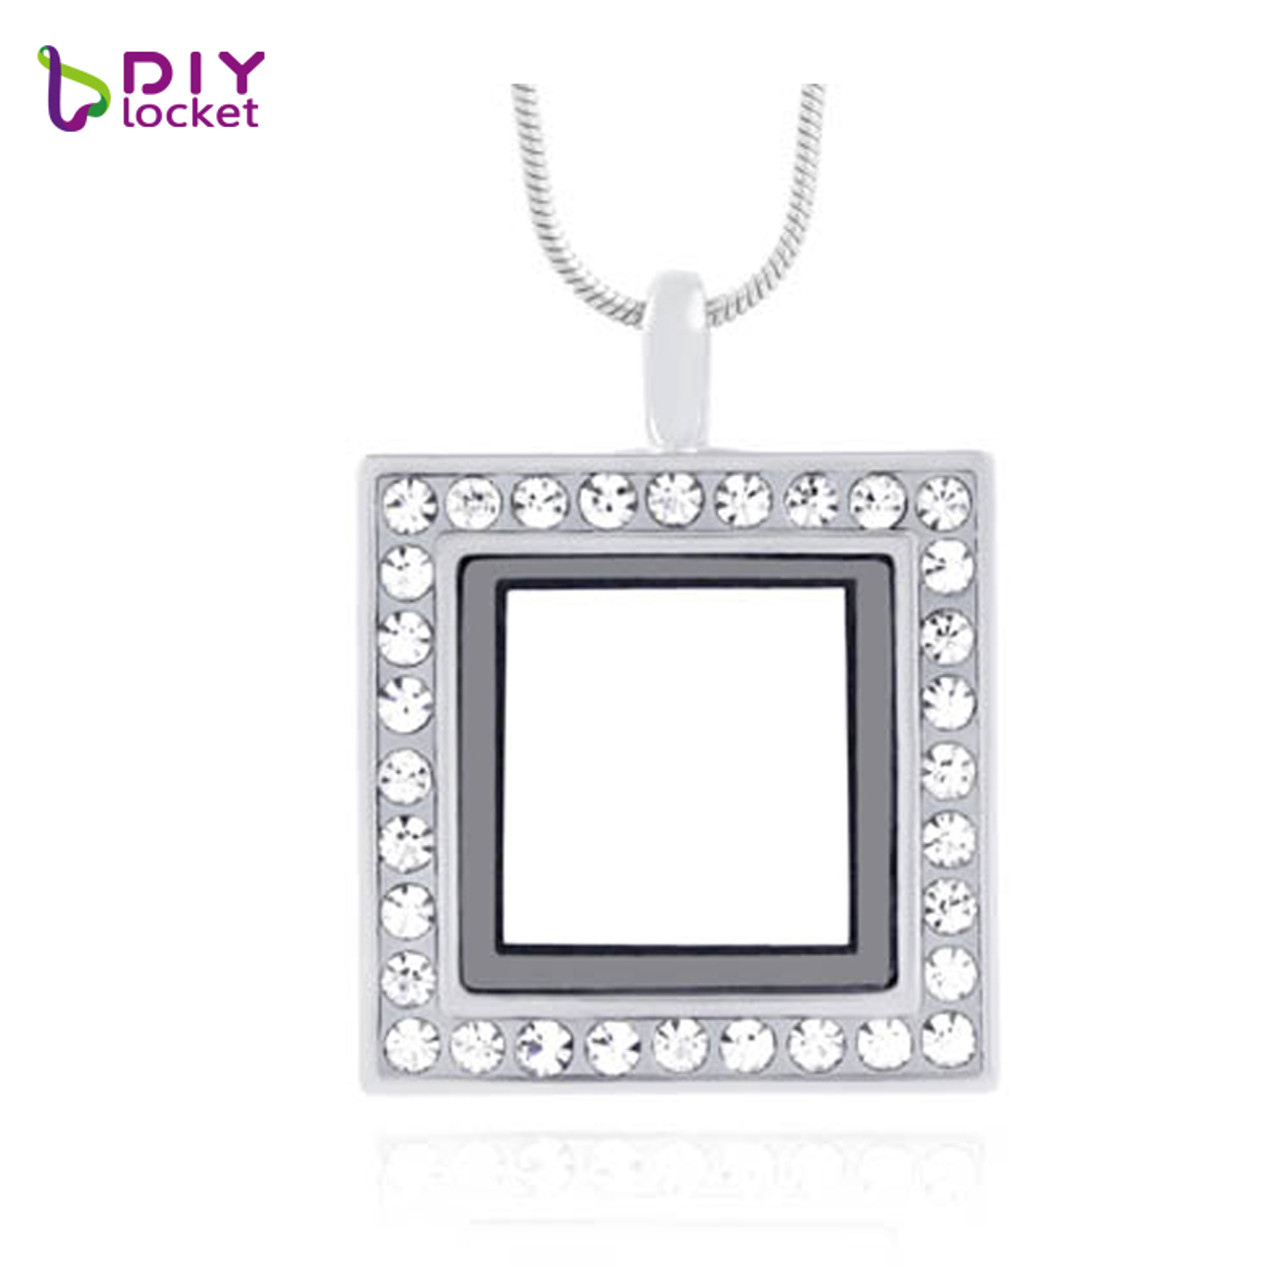 Silver floating charm living memory square crystal glass locket silver square rhinestones glass photo locket pendant necklace wholesale women jewelry lsfl011 1 aloadofball Choice Image